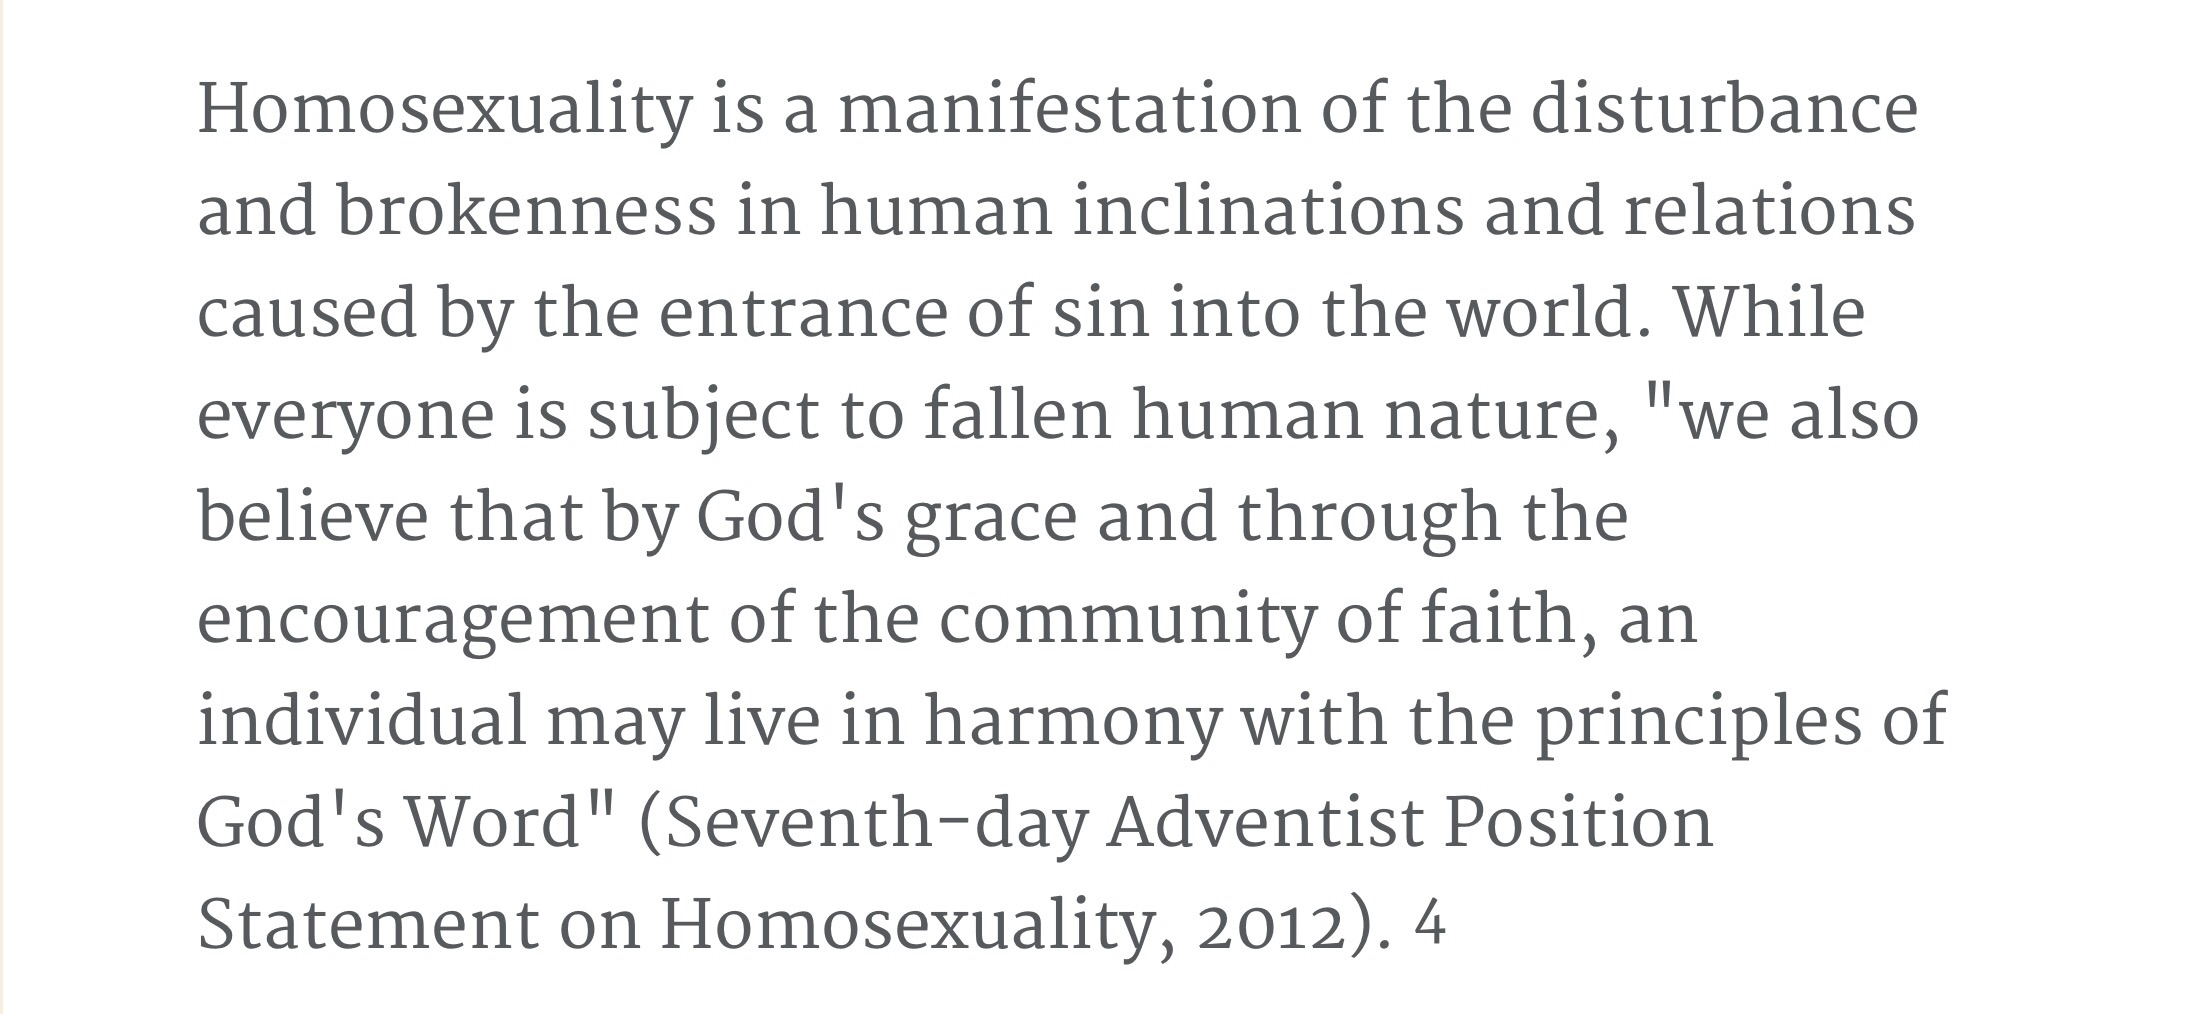 Sda beliefs on homosexuality and christianity